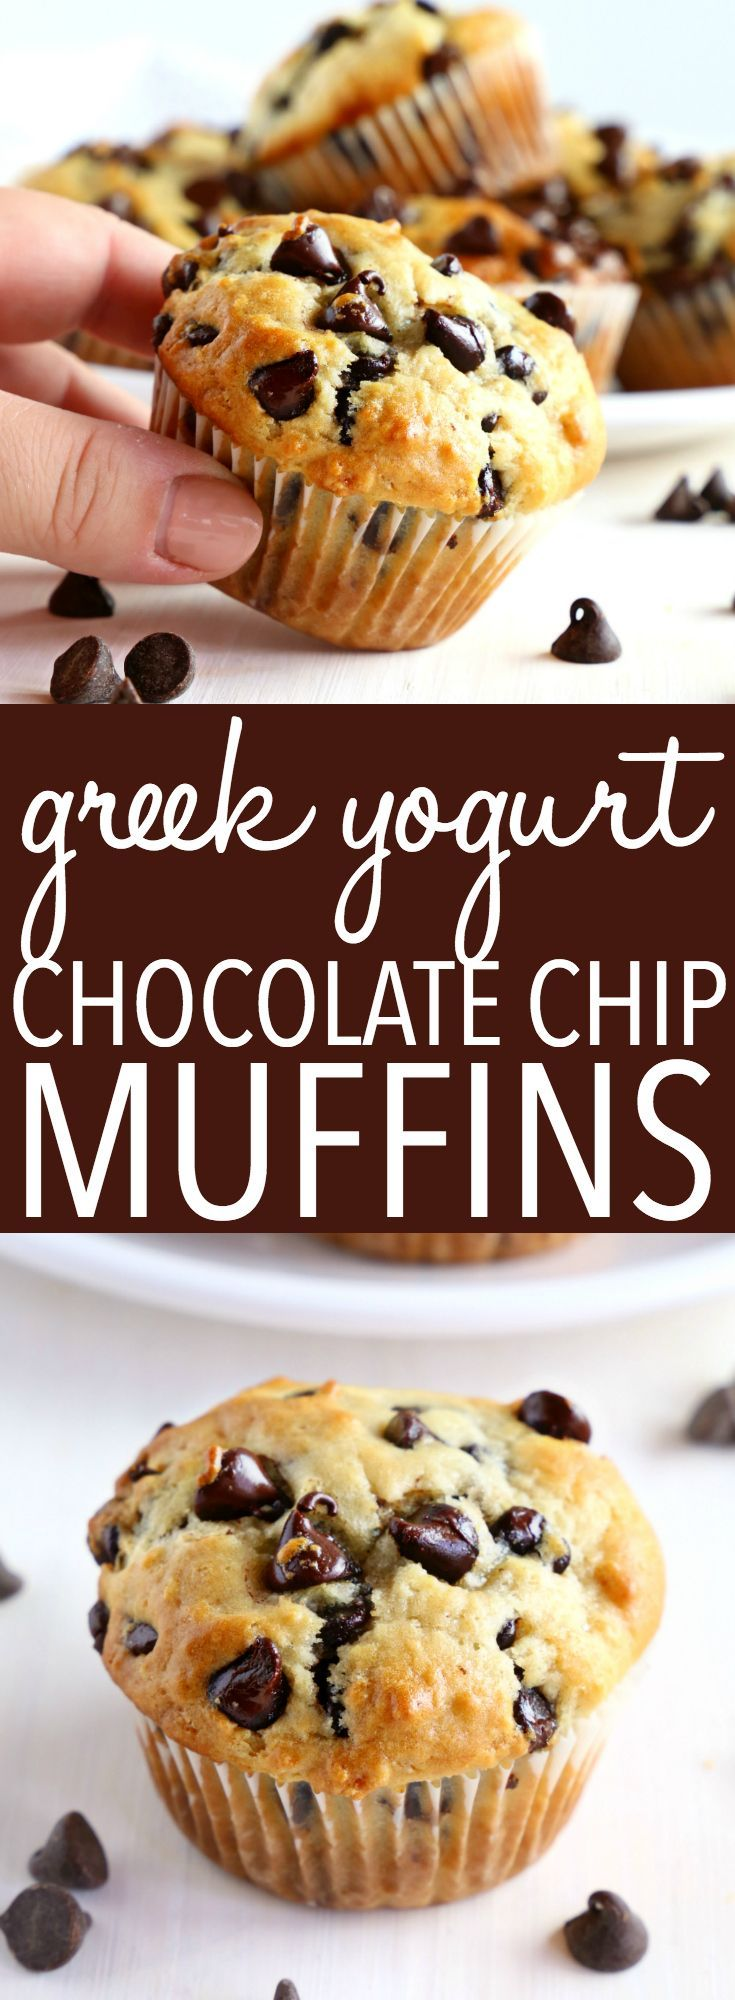 Best Ever Greek Yogurt Chocolate Chip Muffins – The Busy Baker